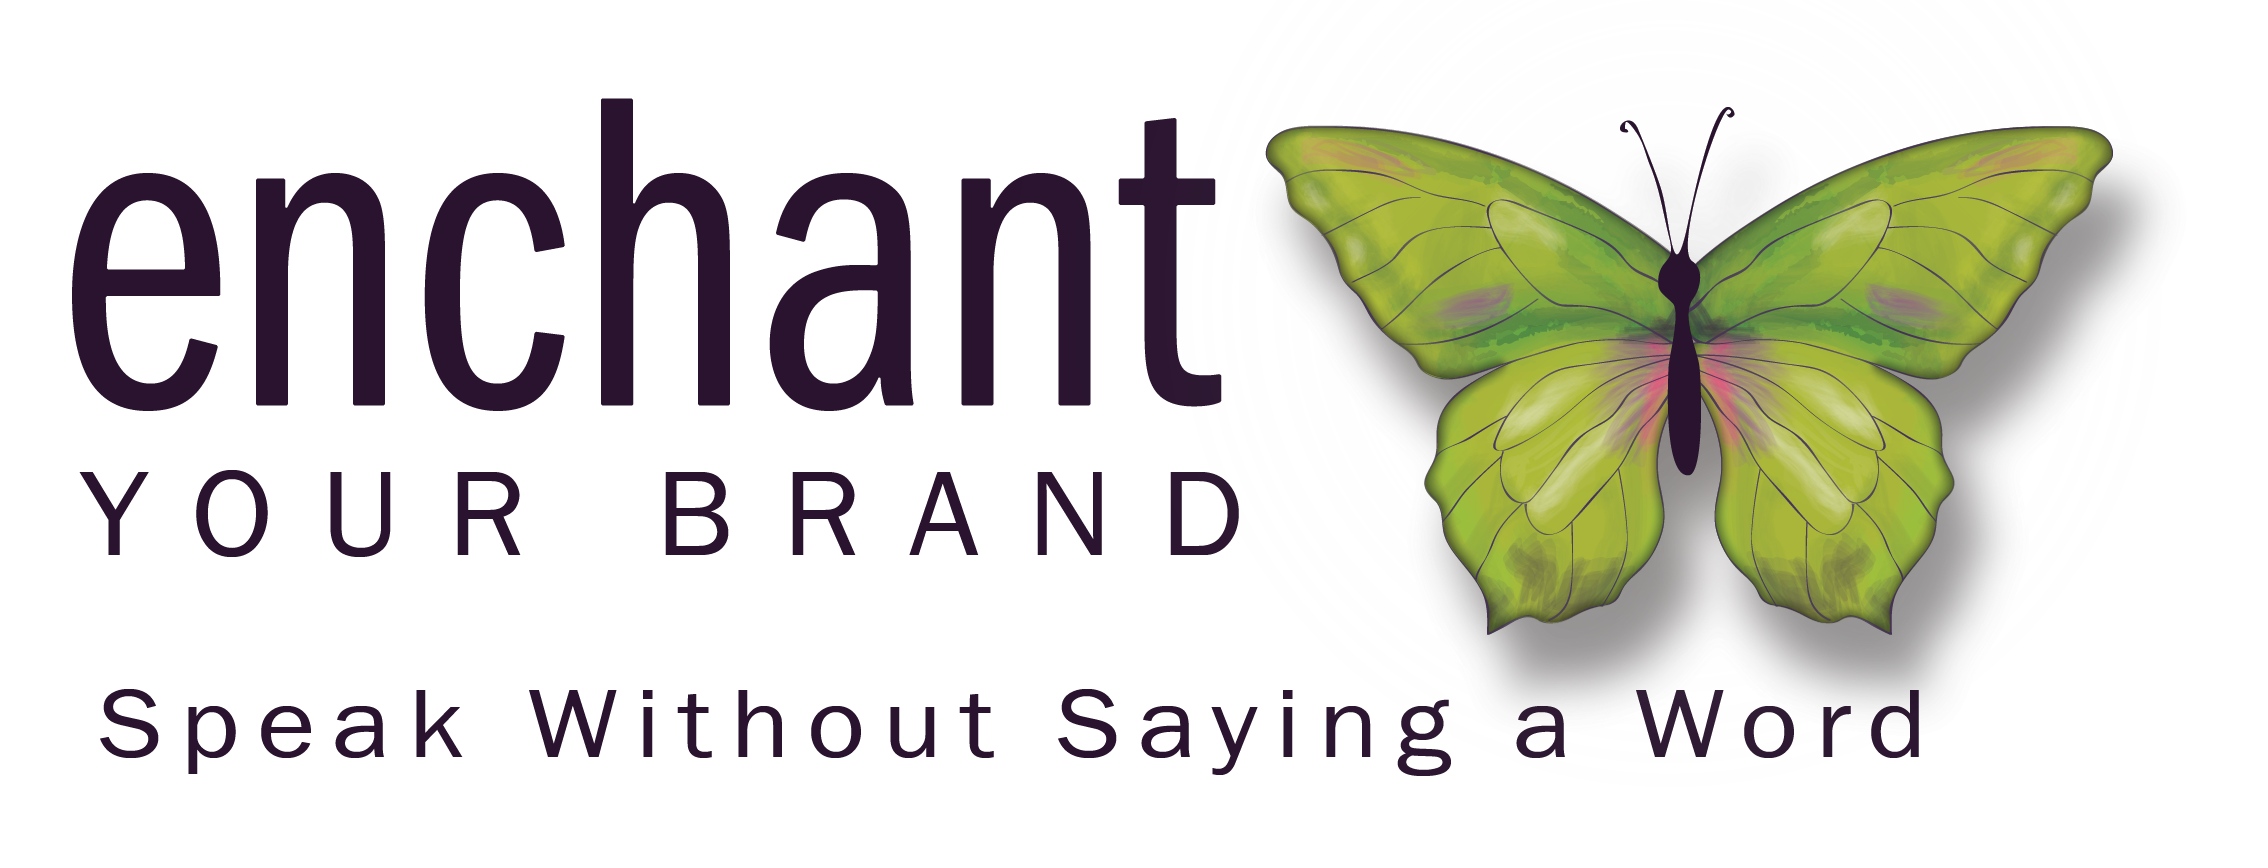 ENCHANT YOUR brand PNG HR-04 A